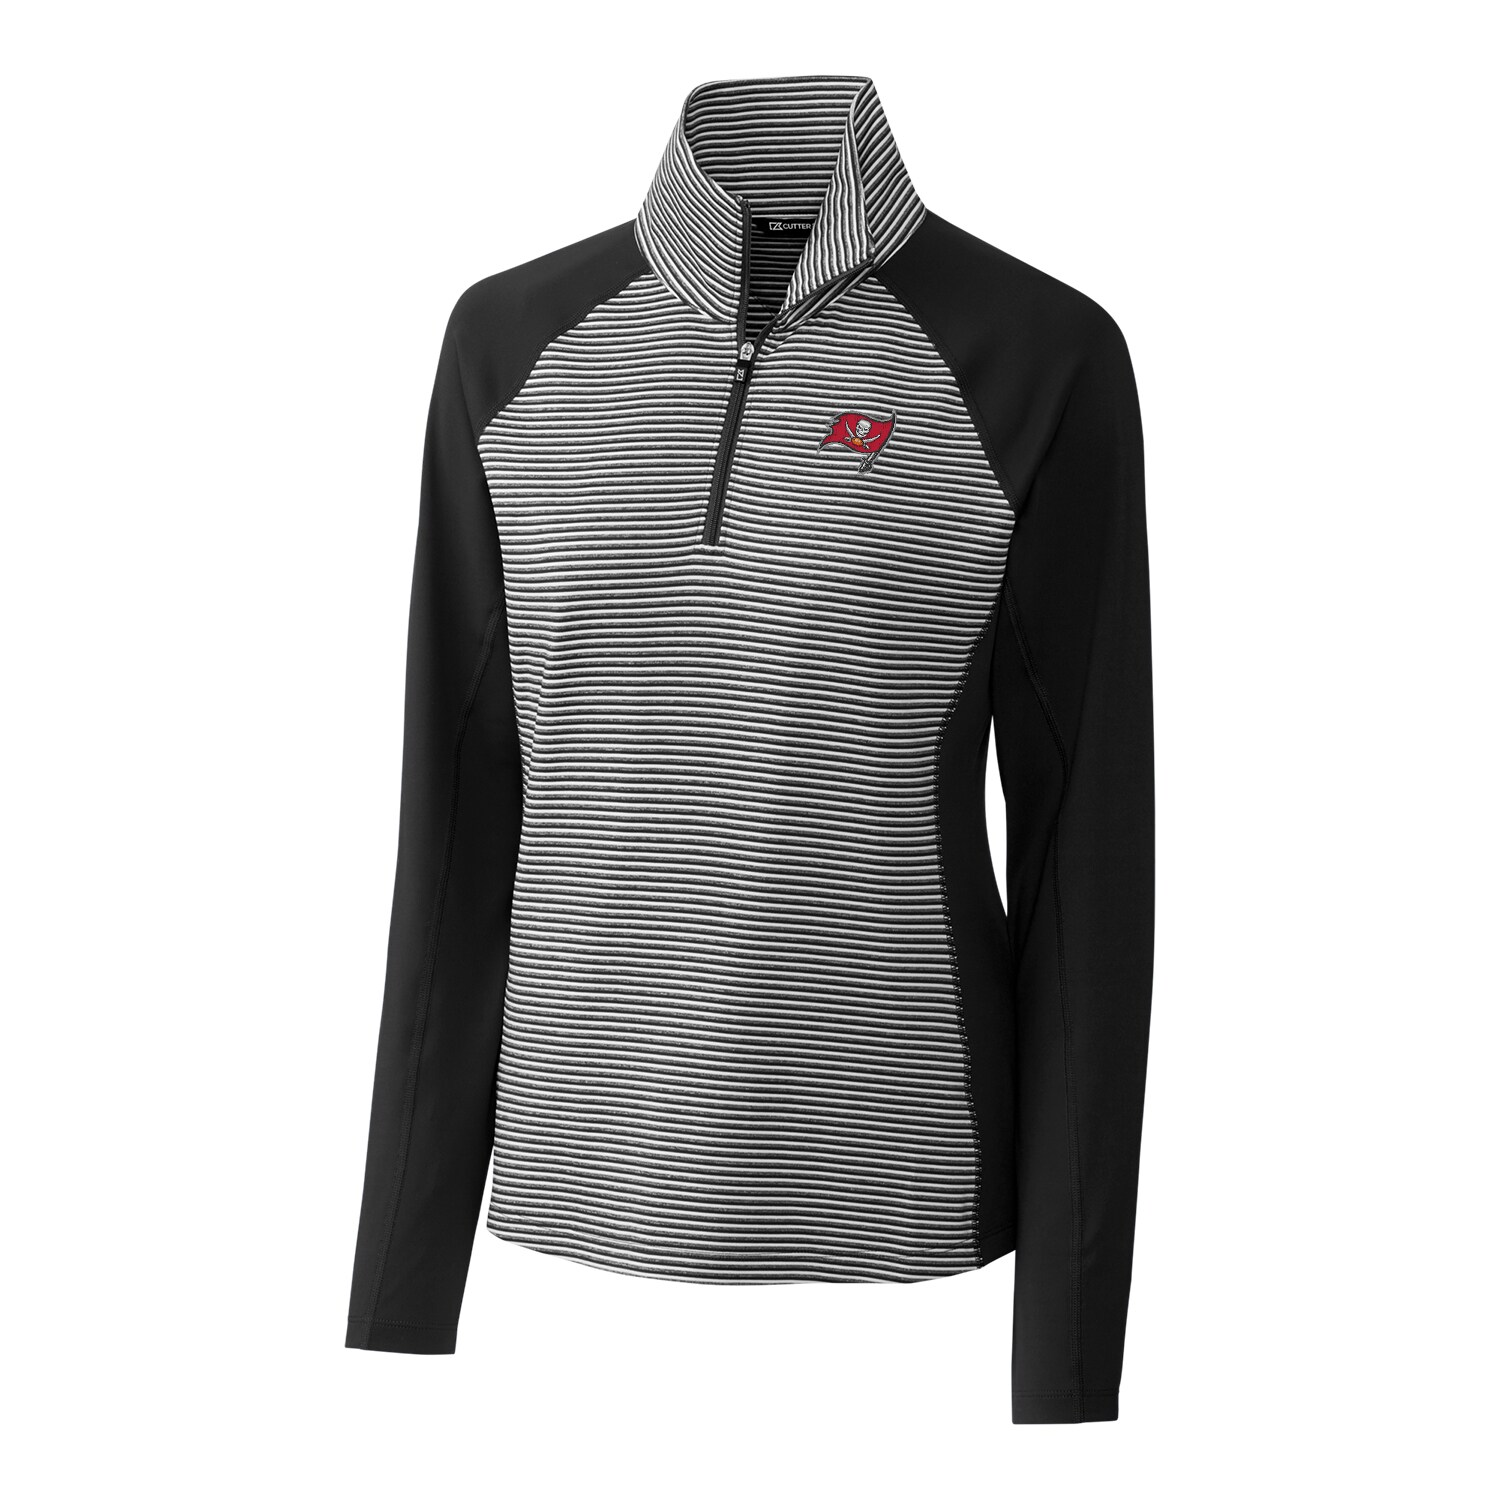 Tampa Bay Buccaneers Cutter & Buck Women's Forge Tonal Stripe Half-Zip Pullover Jacket - Black